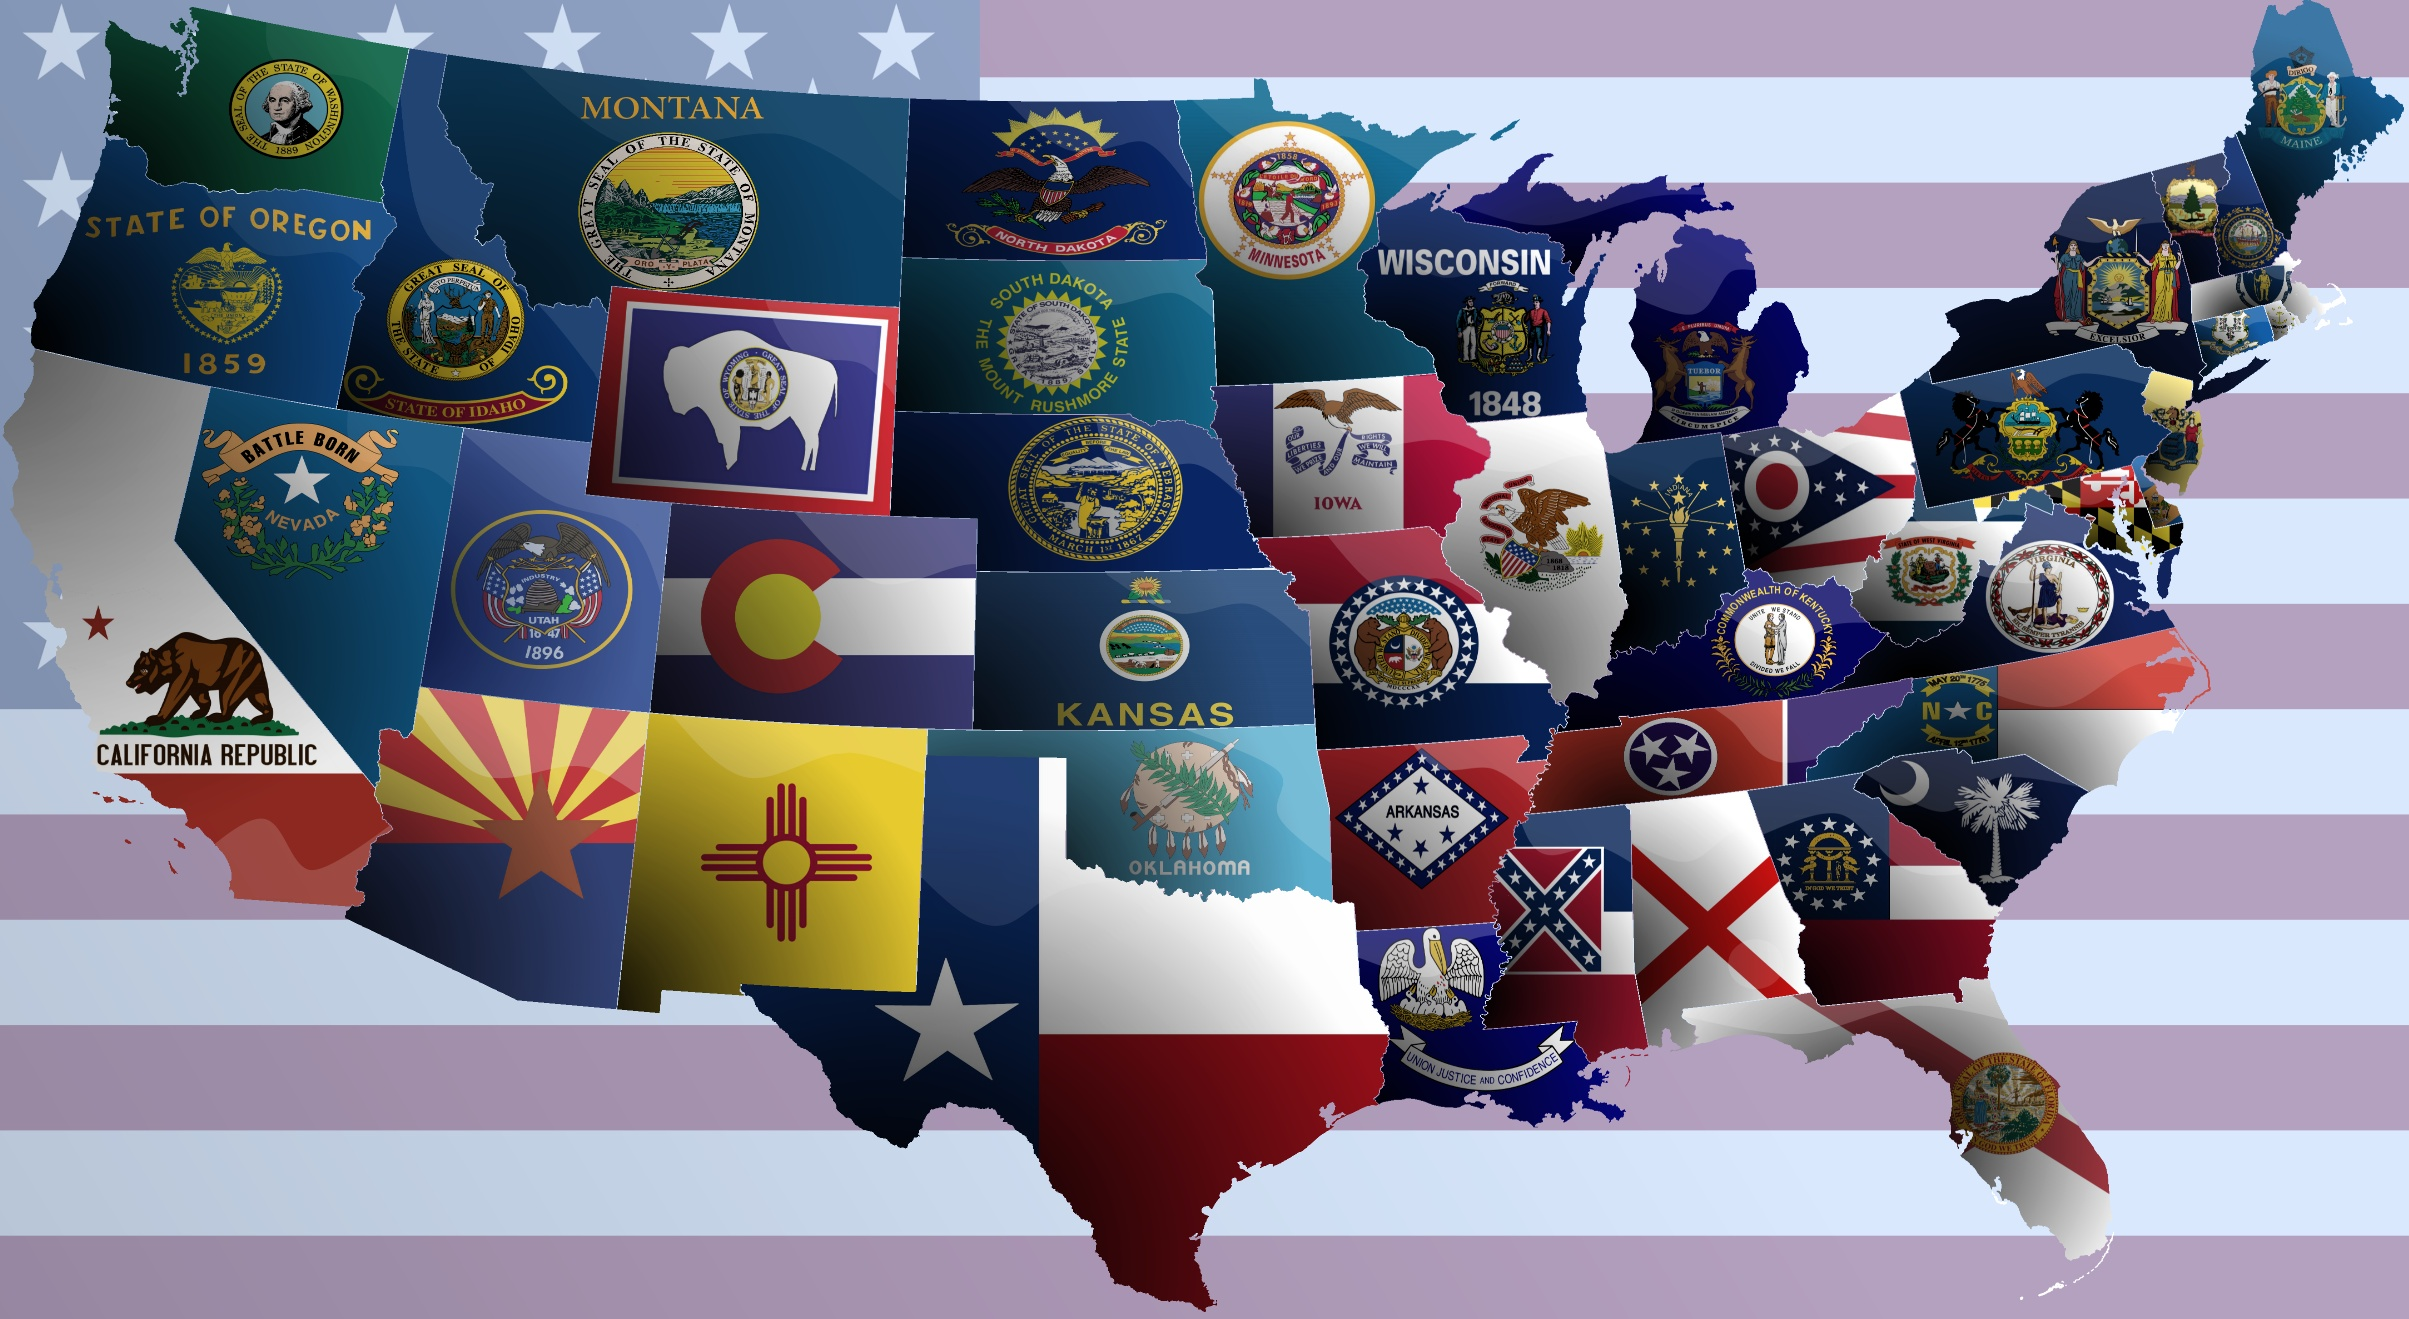 United States Of America Flag Map By JaySimons On DeviantArt - A picture of the united states of america map